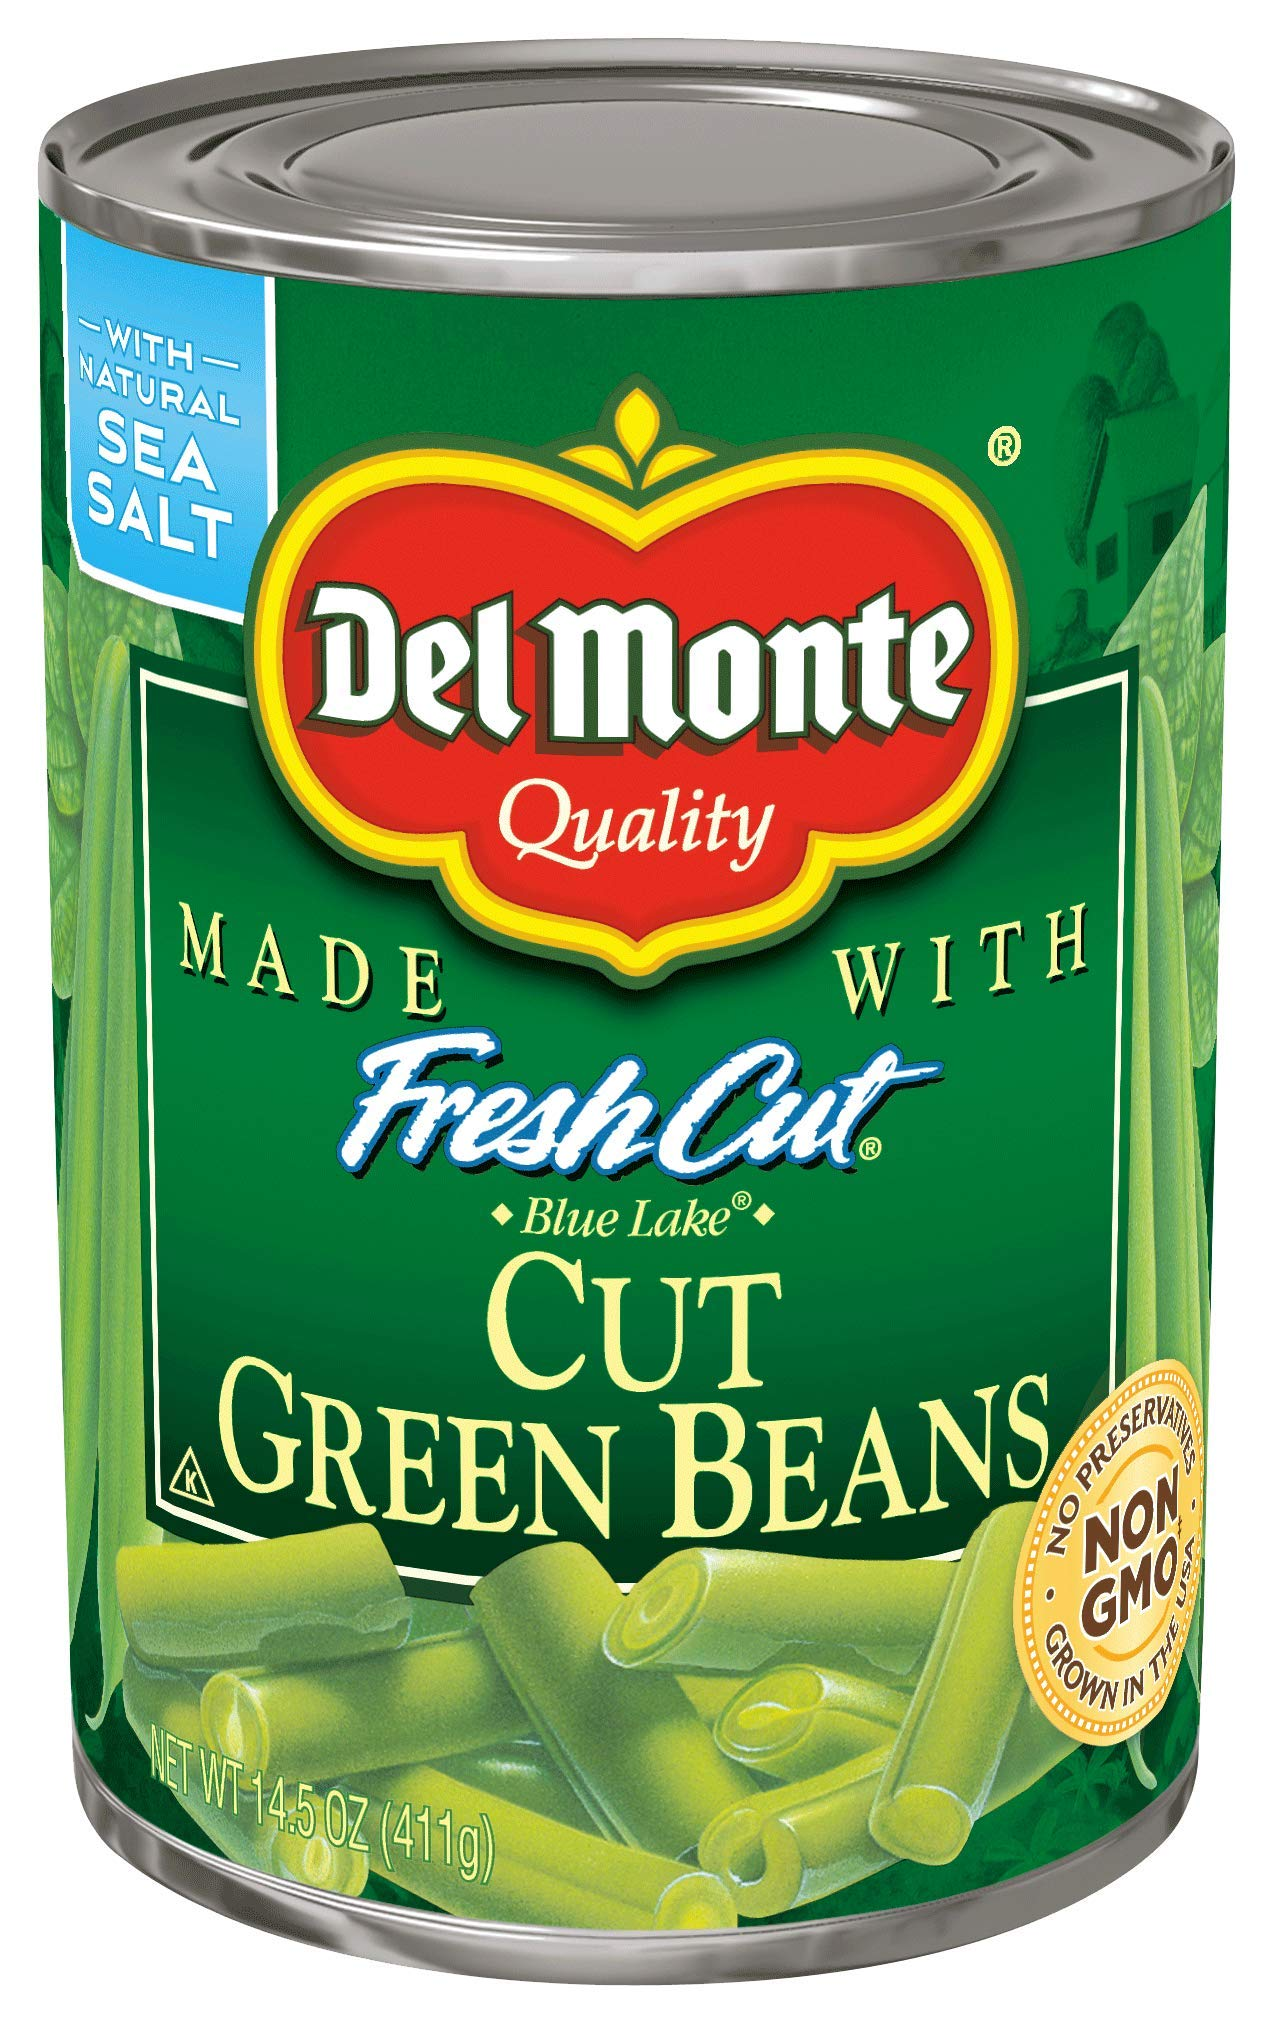 Del Monte Canned Fresh Cut Blue Lake Cut Green Beans, 14.5-Ounce